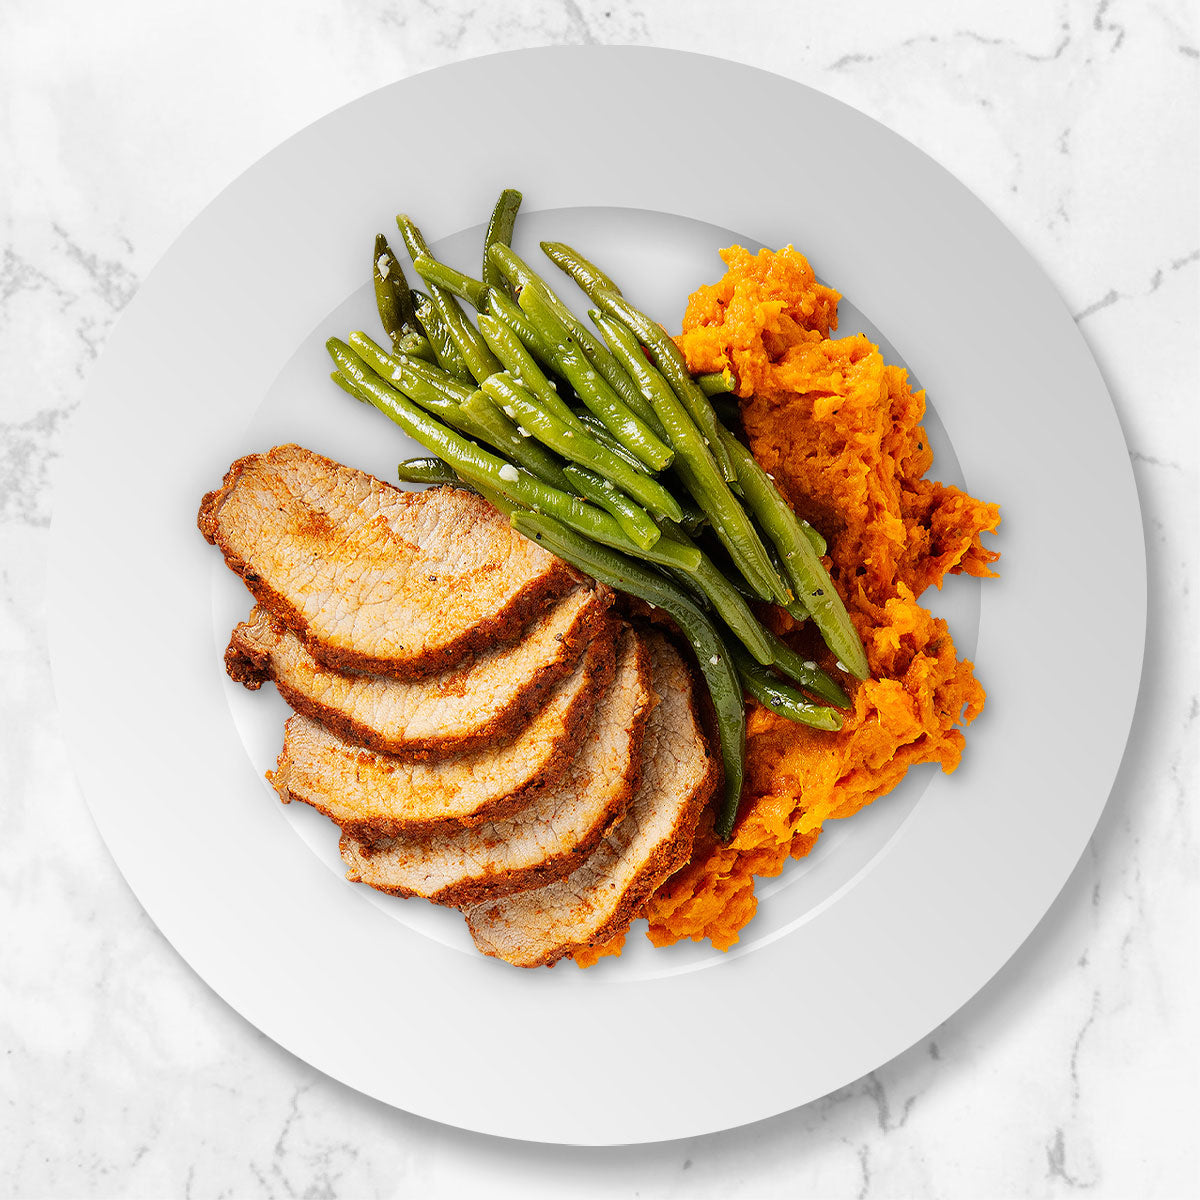 Pork Loin with Sweet Potato Mash and Green Beans